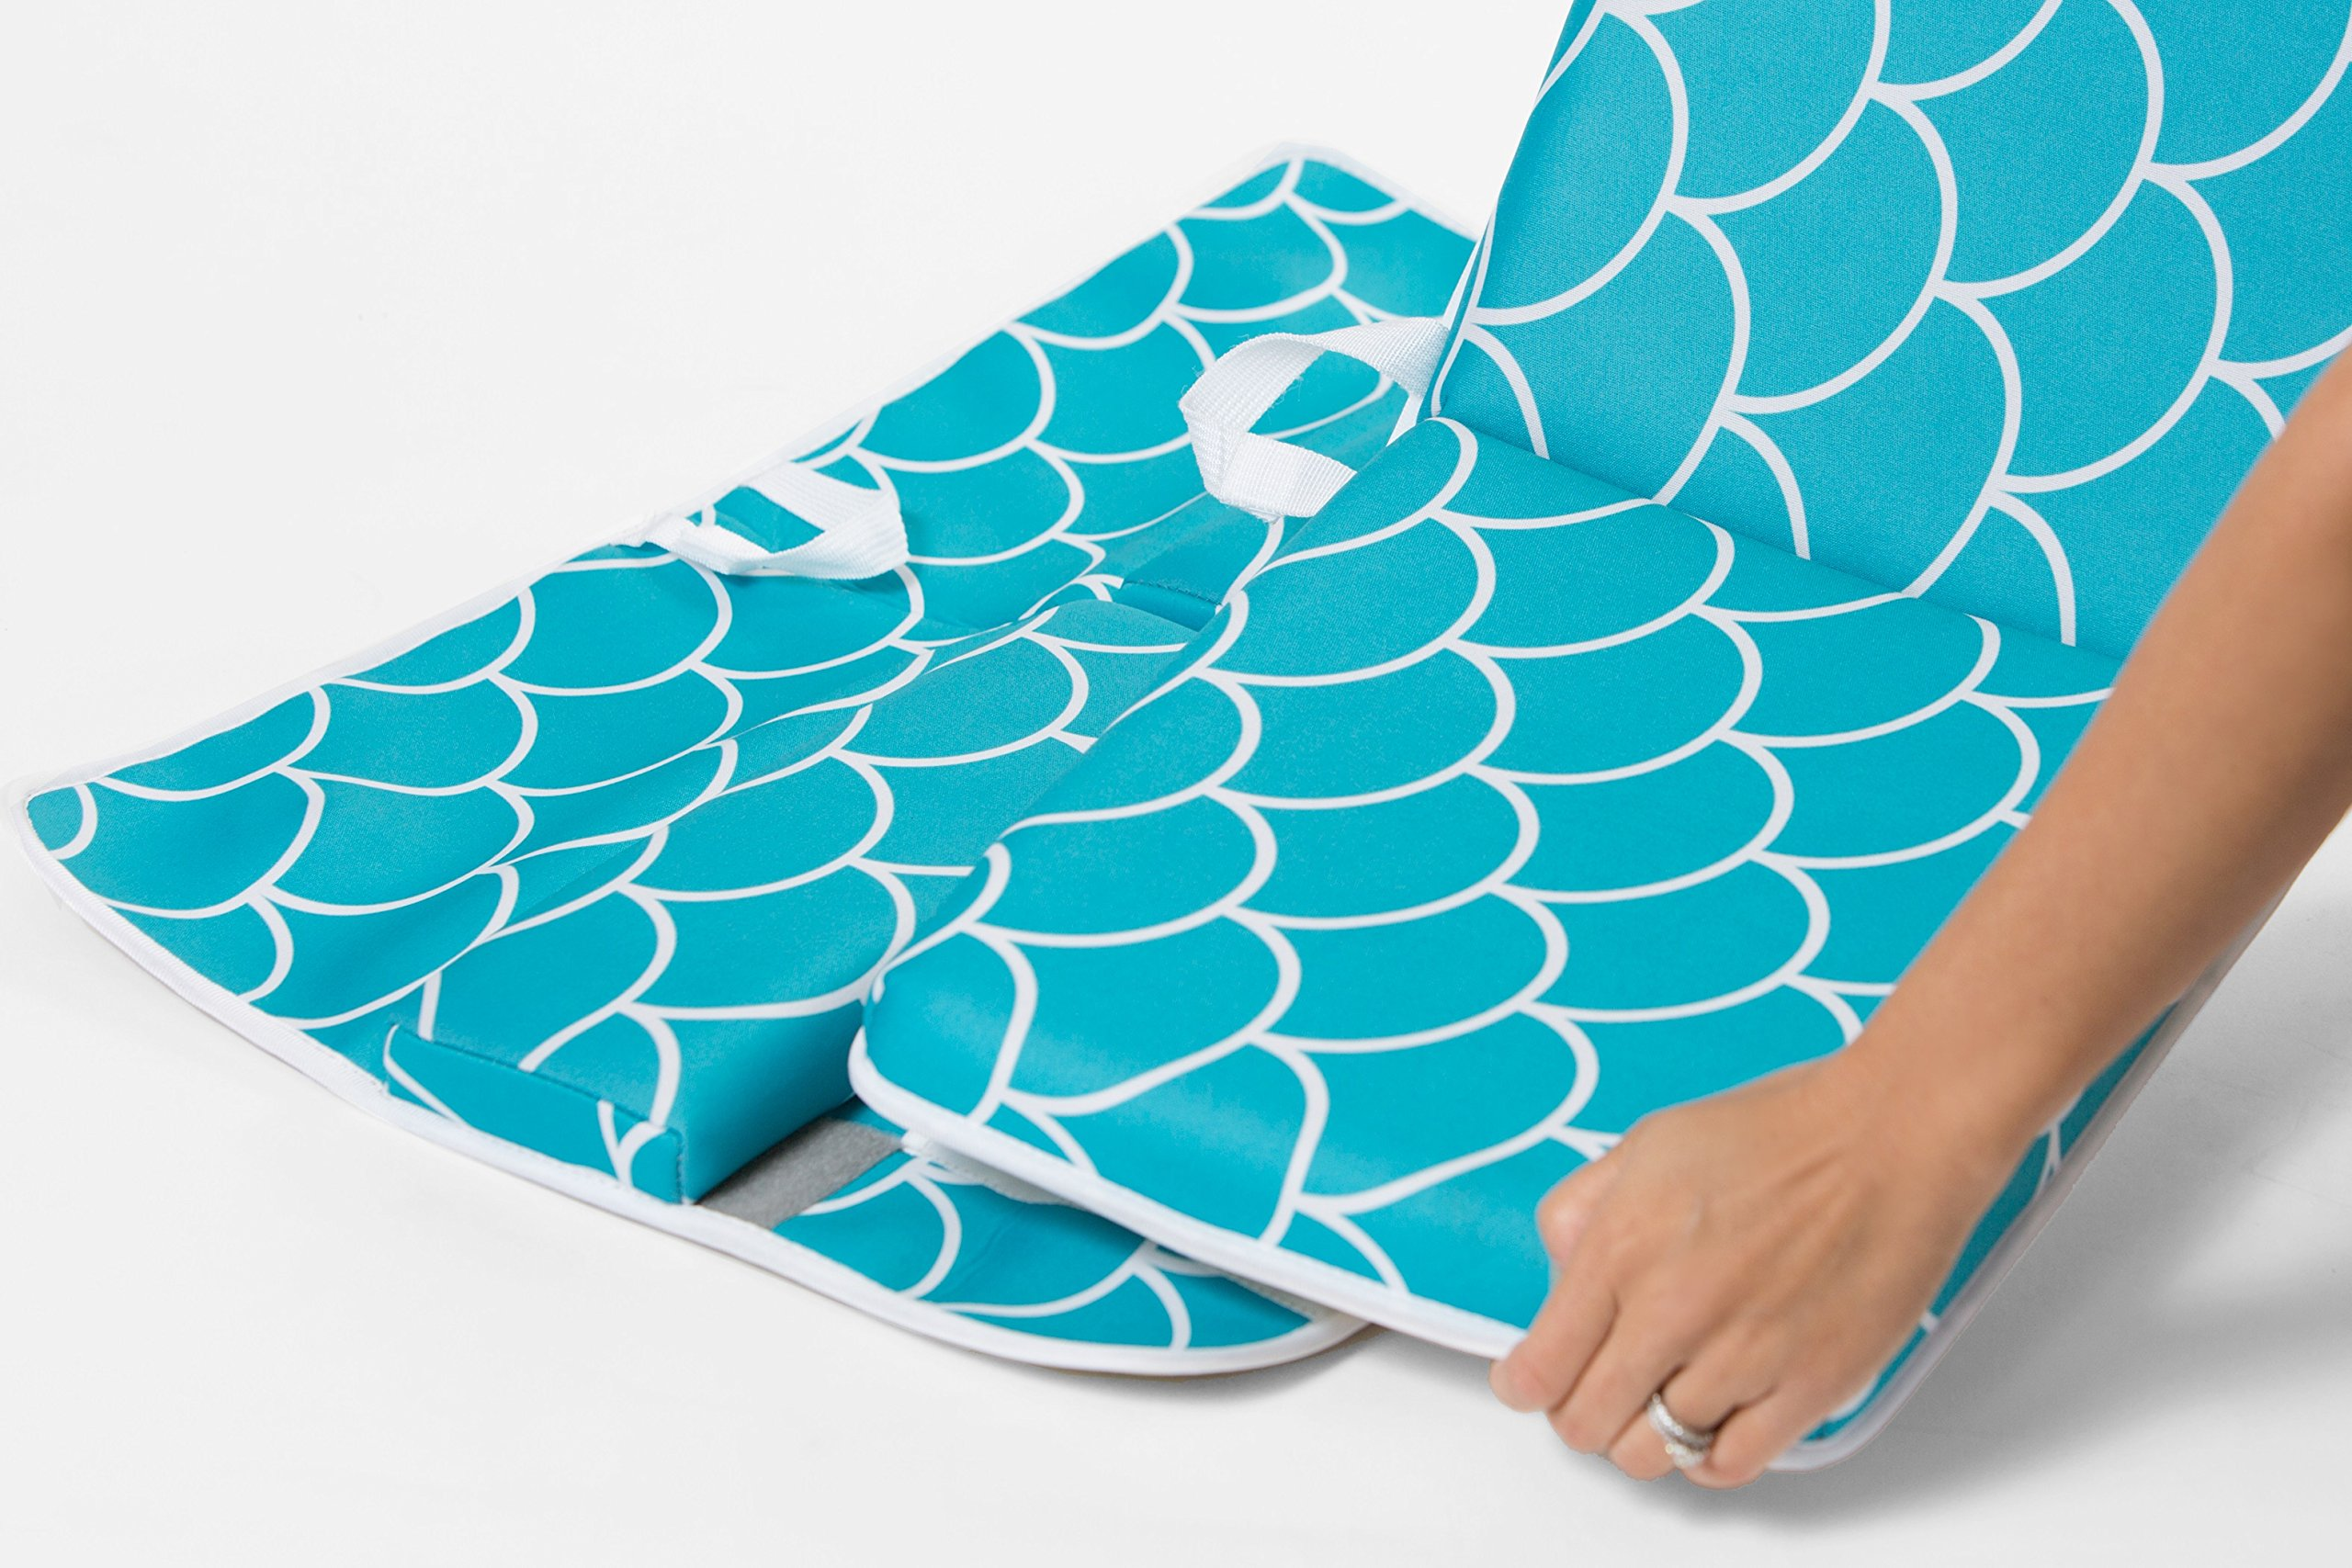 Baby Bath Kneeling Pad with Elbow Rest - Extra Long - Mermaid Design in Teal Blue - with Bonus Mesh Bath Toy Organizer - Wonderful Gift Set for Parents with a Infant, Toddler - by Fins + Tales